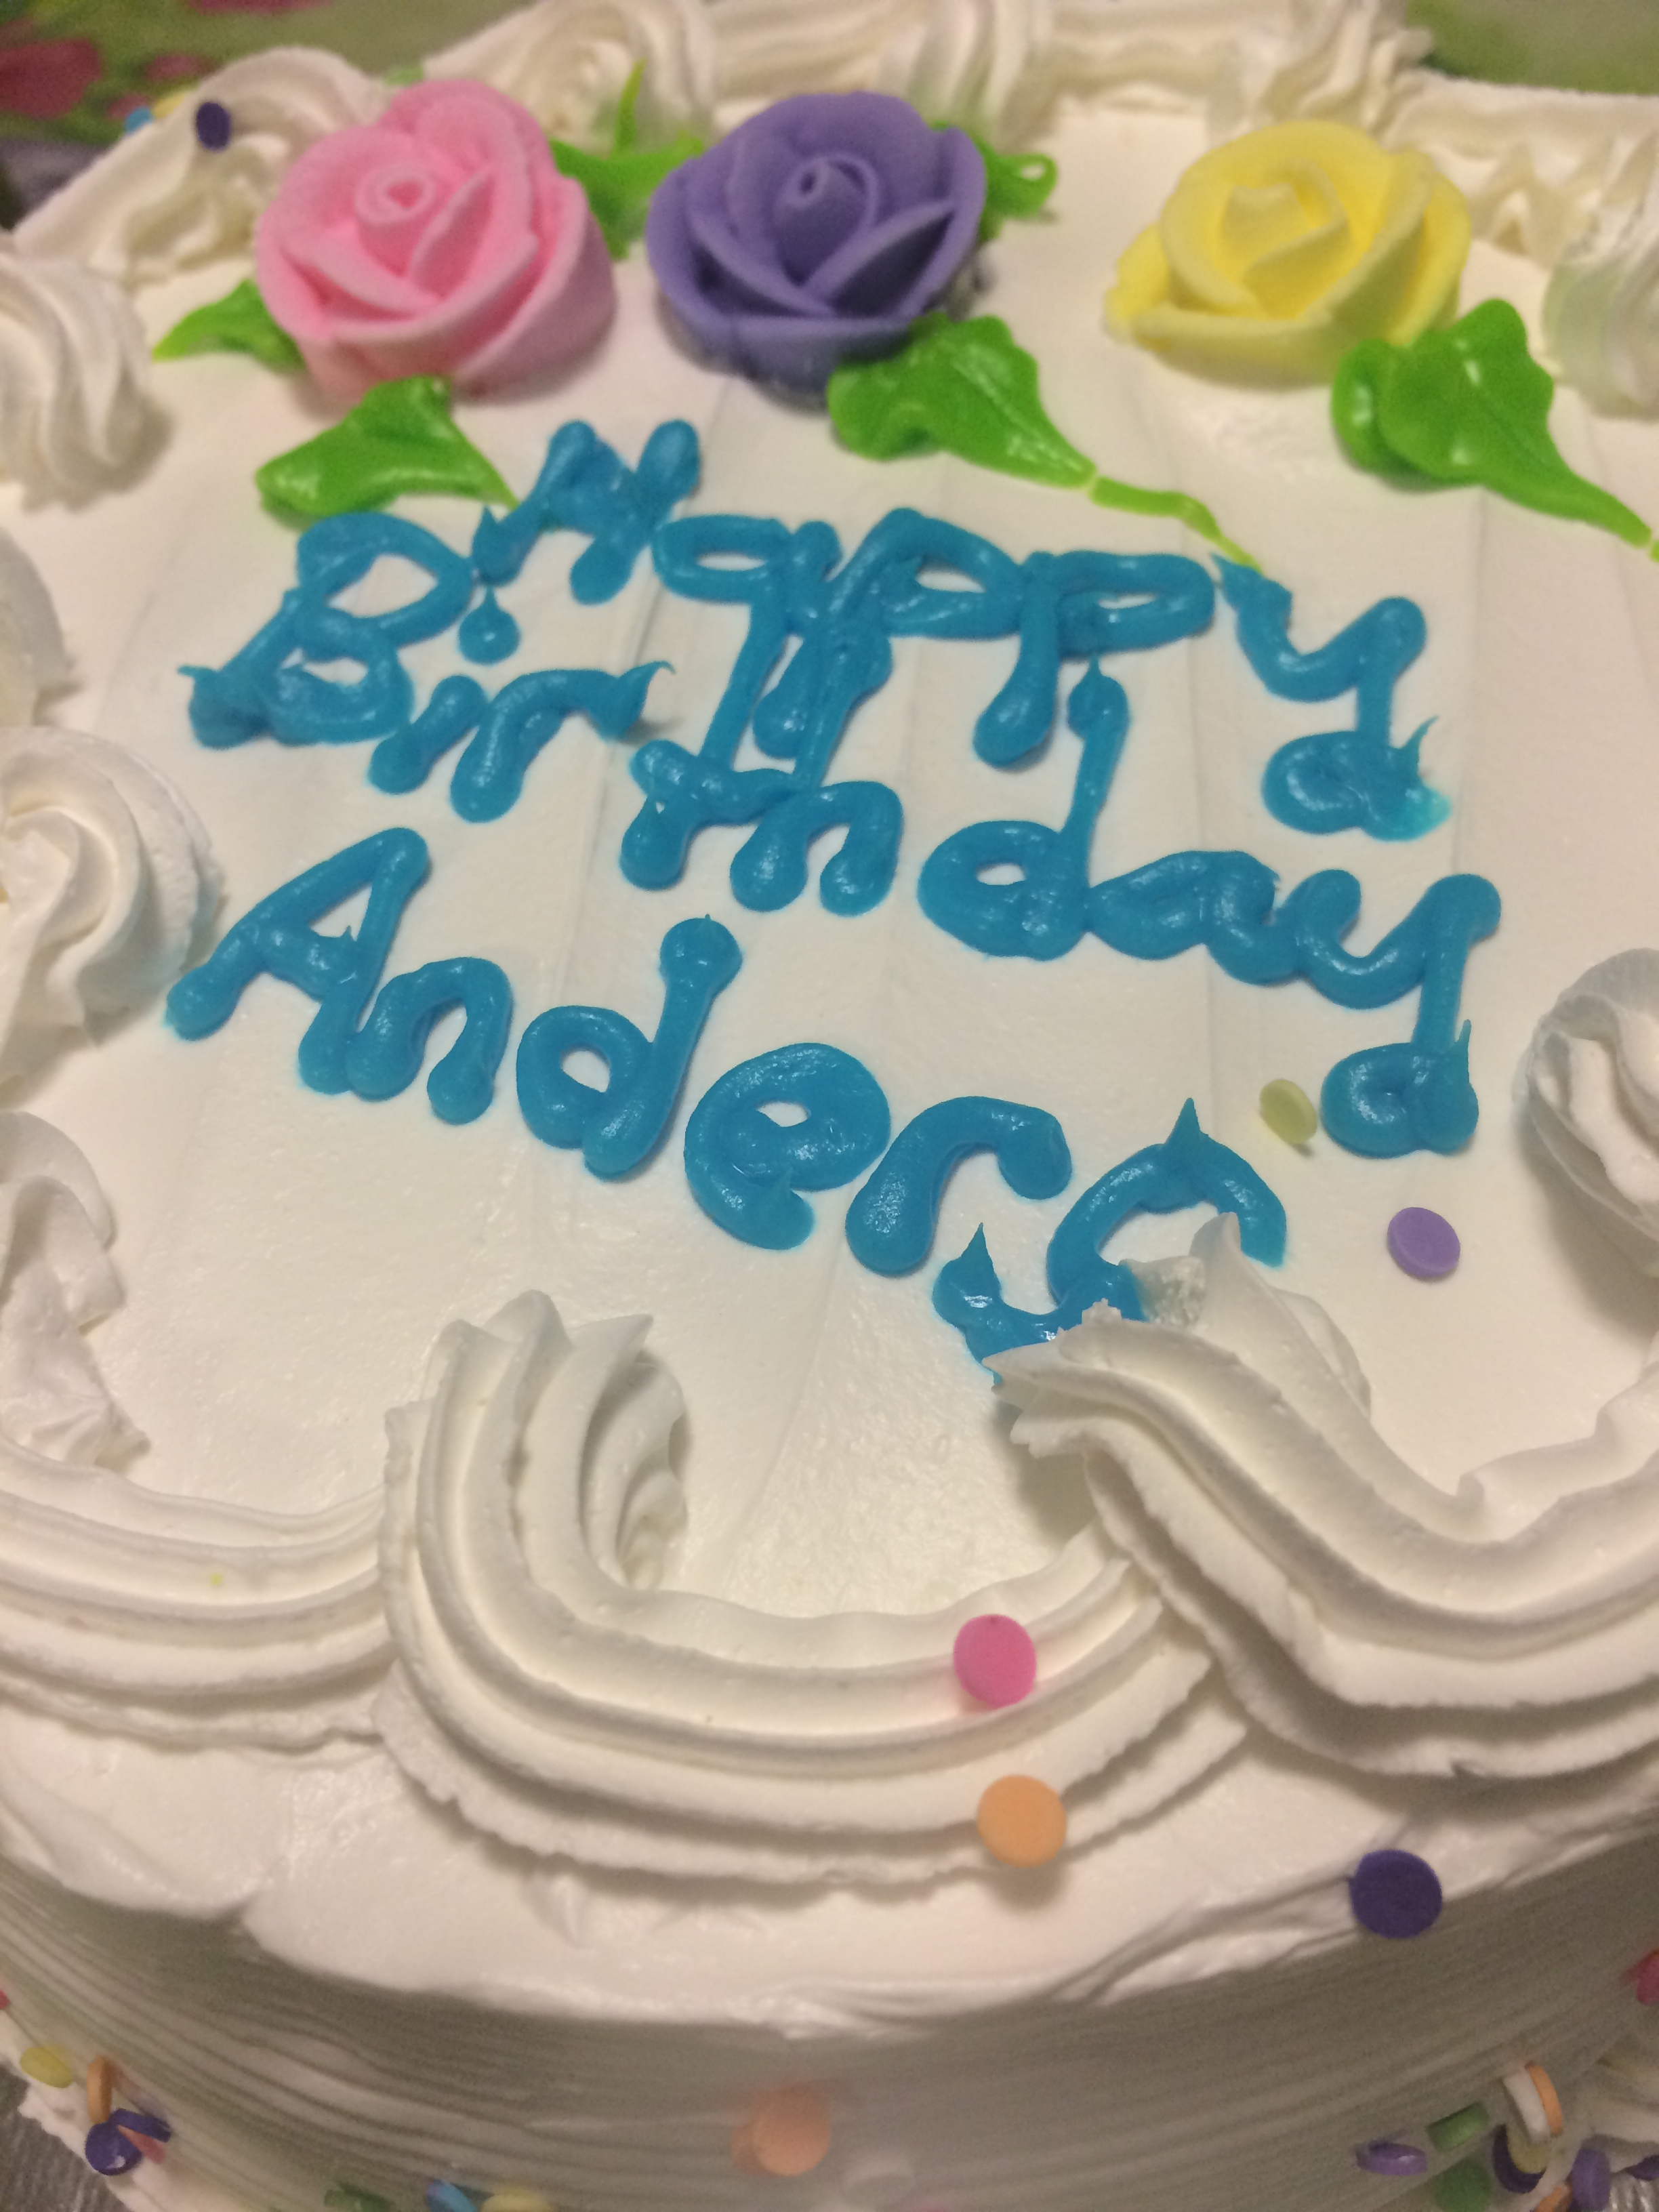 Anders hates having his picture taken, so this is his cake